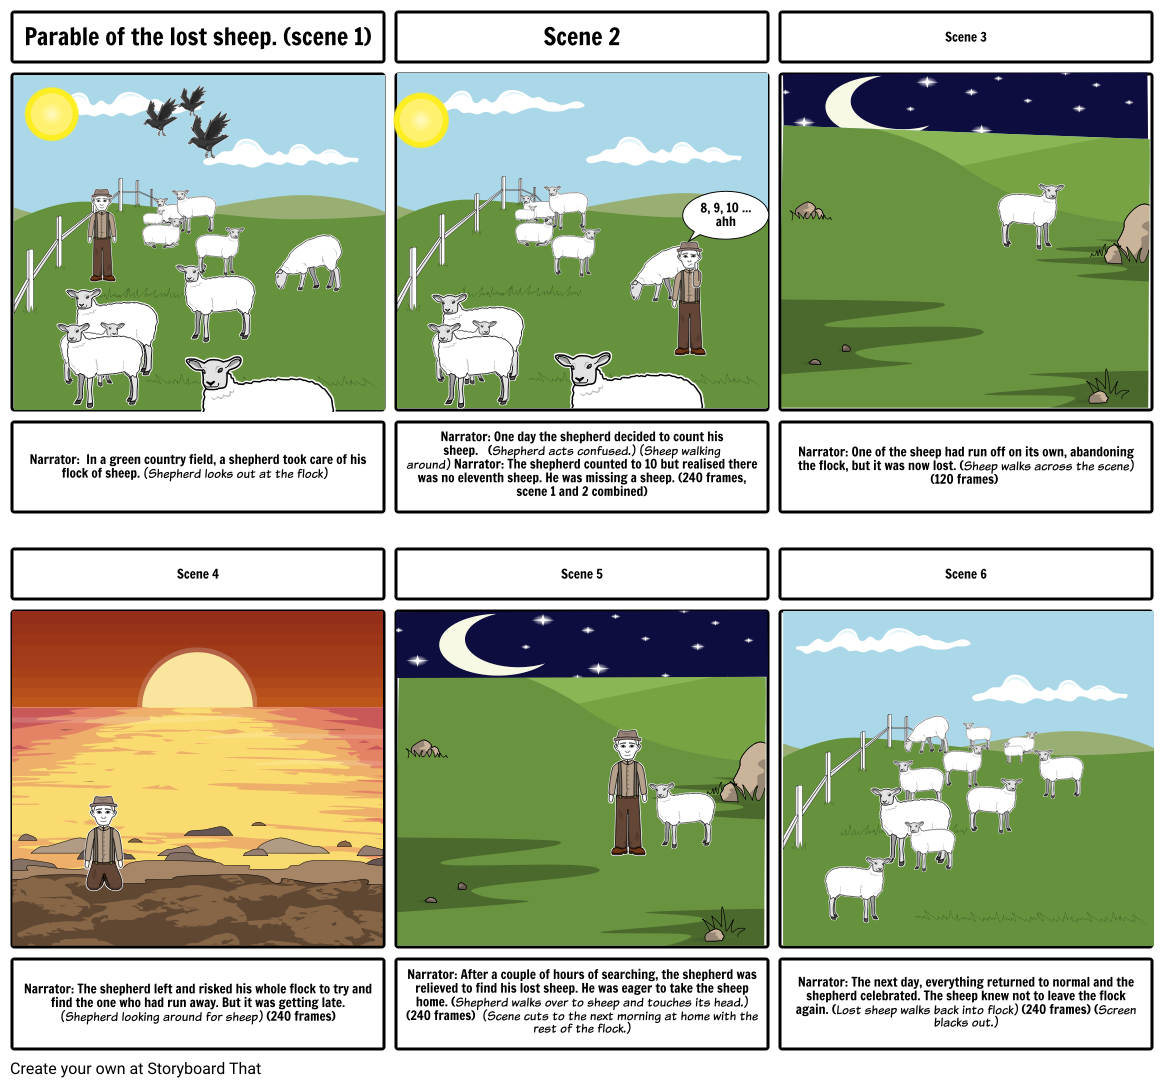 Parable of the lost sheep